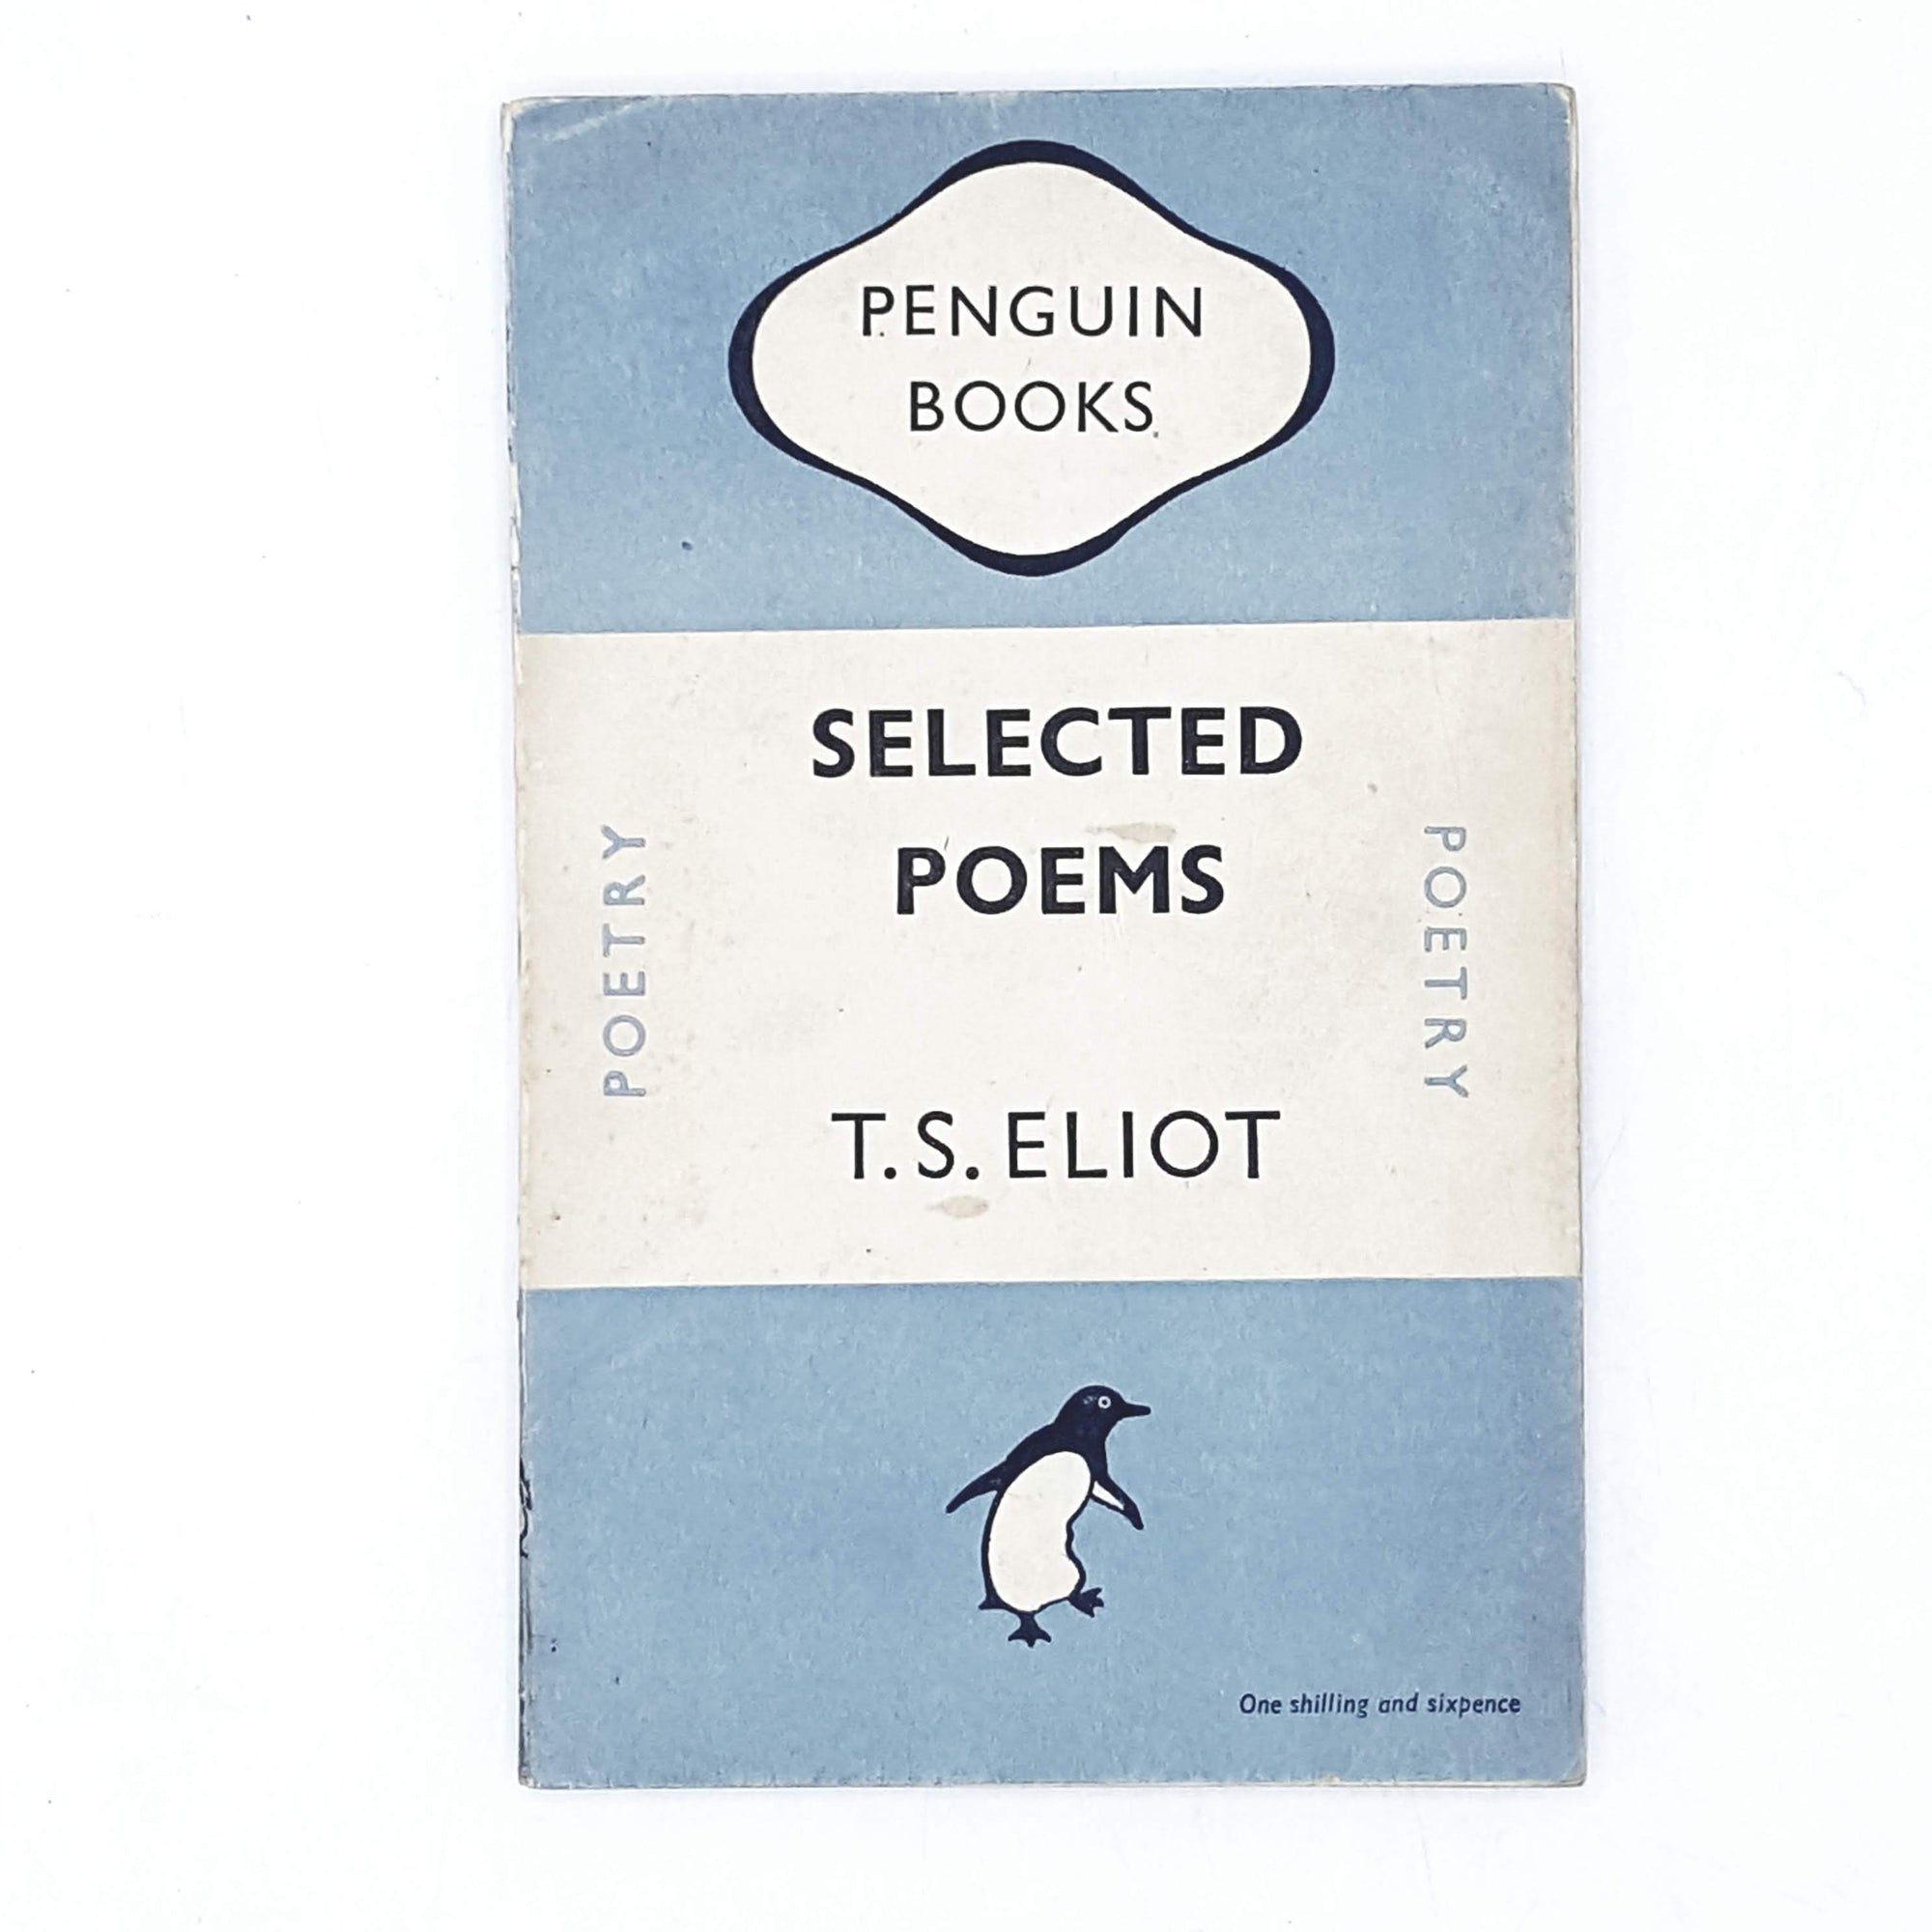 first-edition-penguin-sky-blue-ts-eliot-poetry